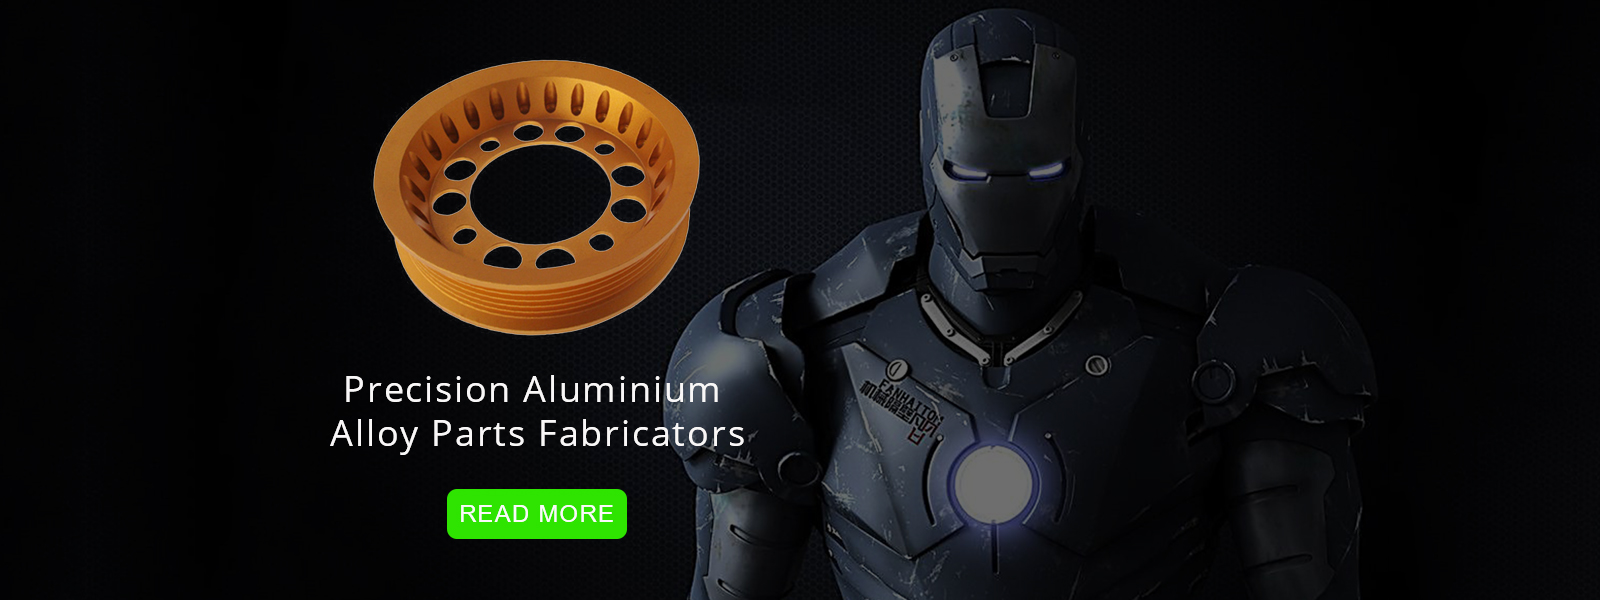 precision aluminium alloy parts fabricators